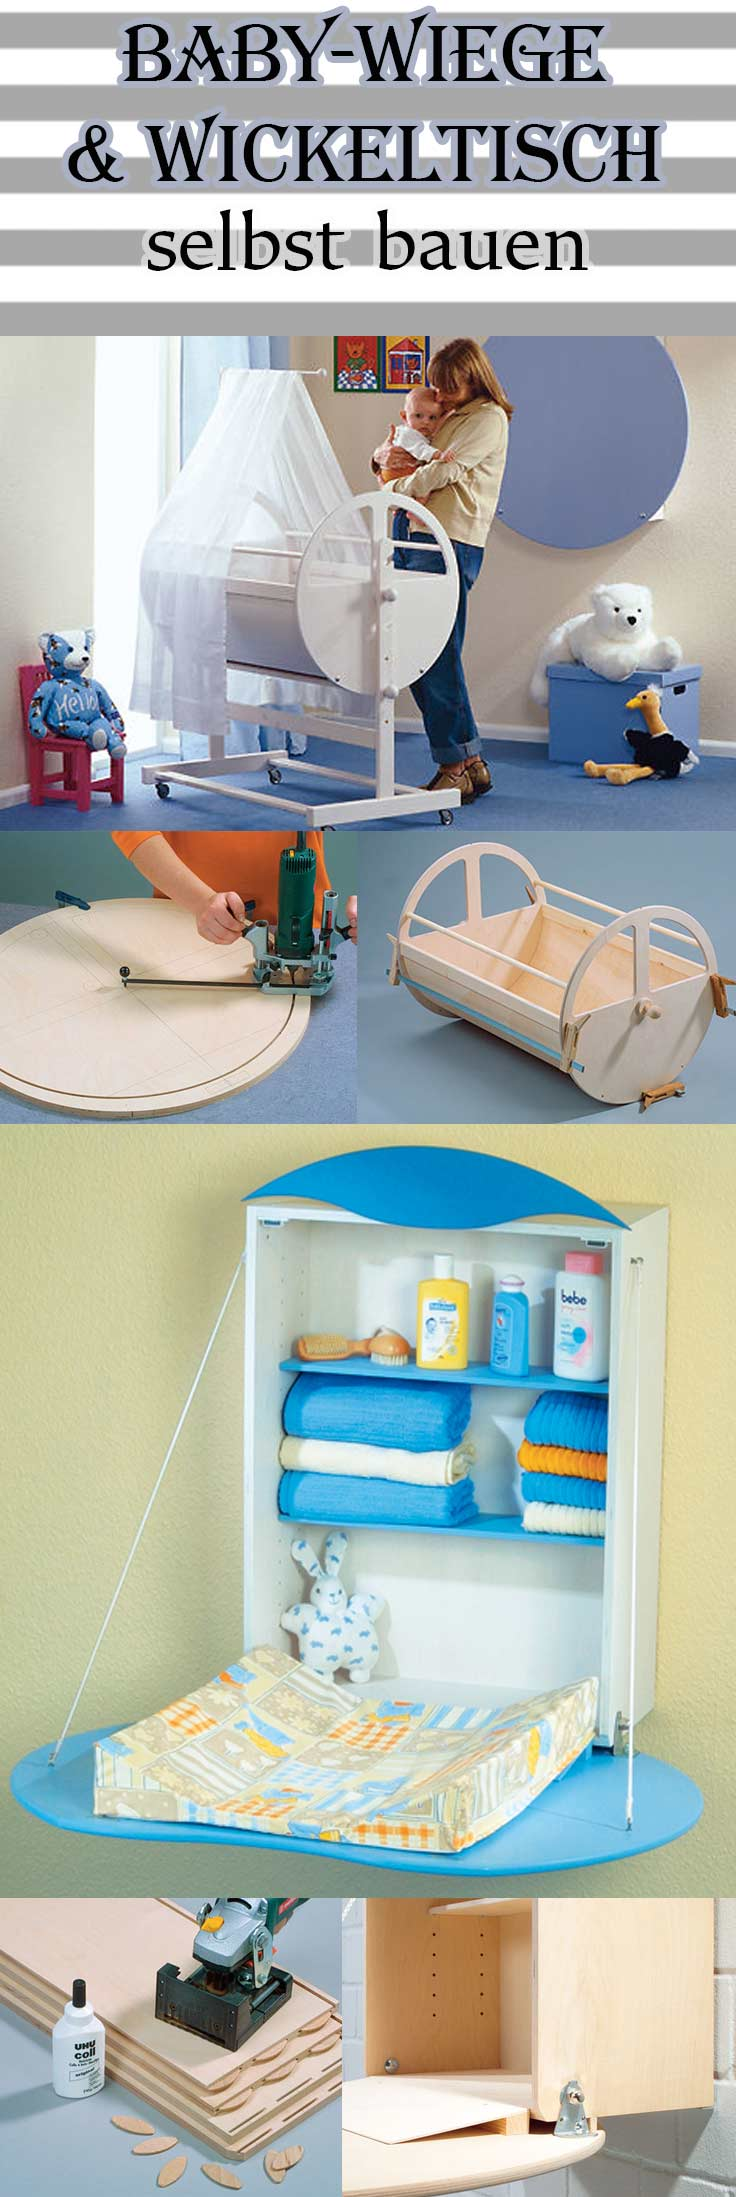 bauanleitung baby wiege selbst bauen kinder hobby diy pinterest wiege wickeltisch und. Black Bedroom Furniture Sets. Home Design Ideas